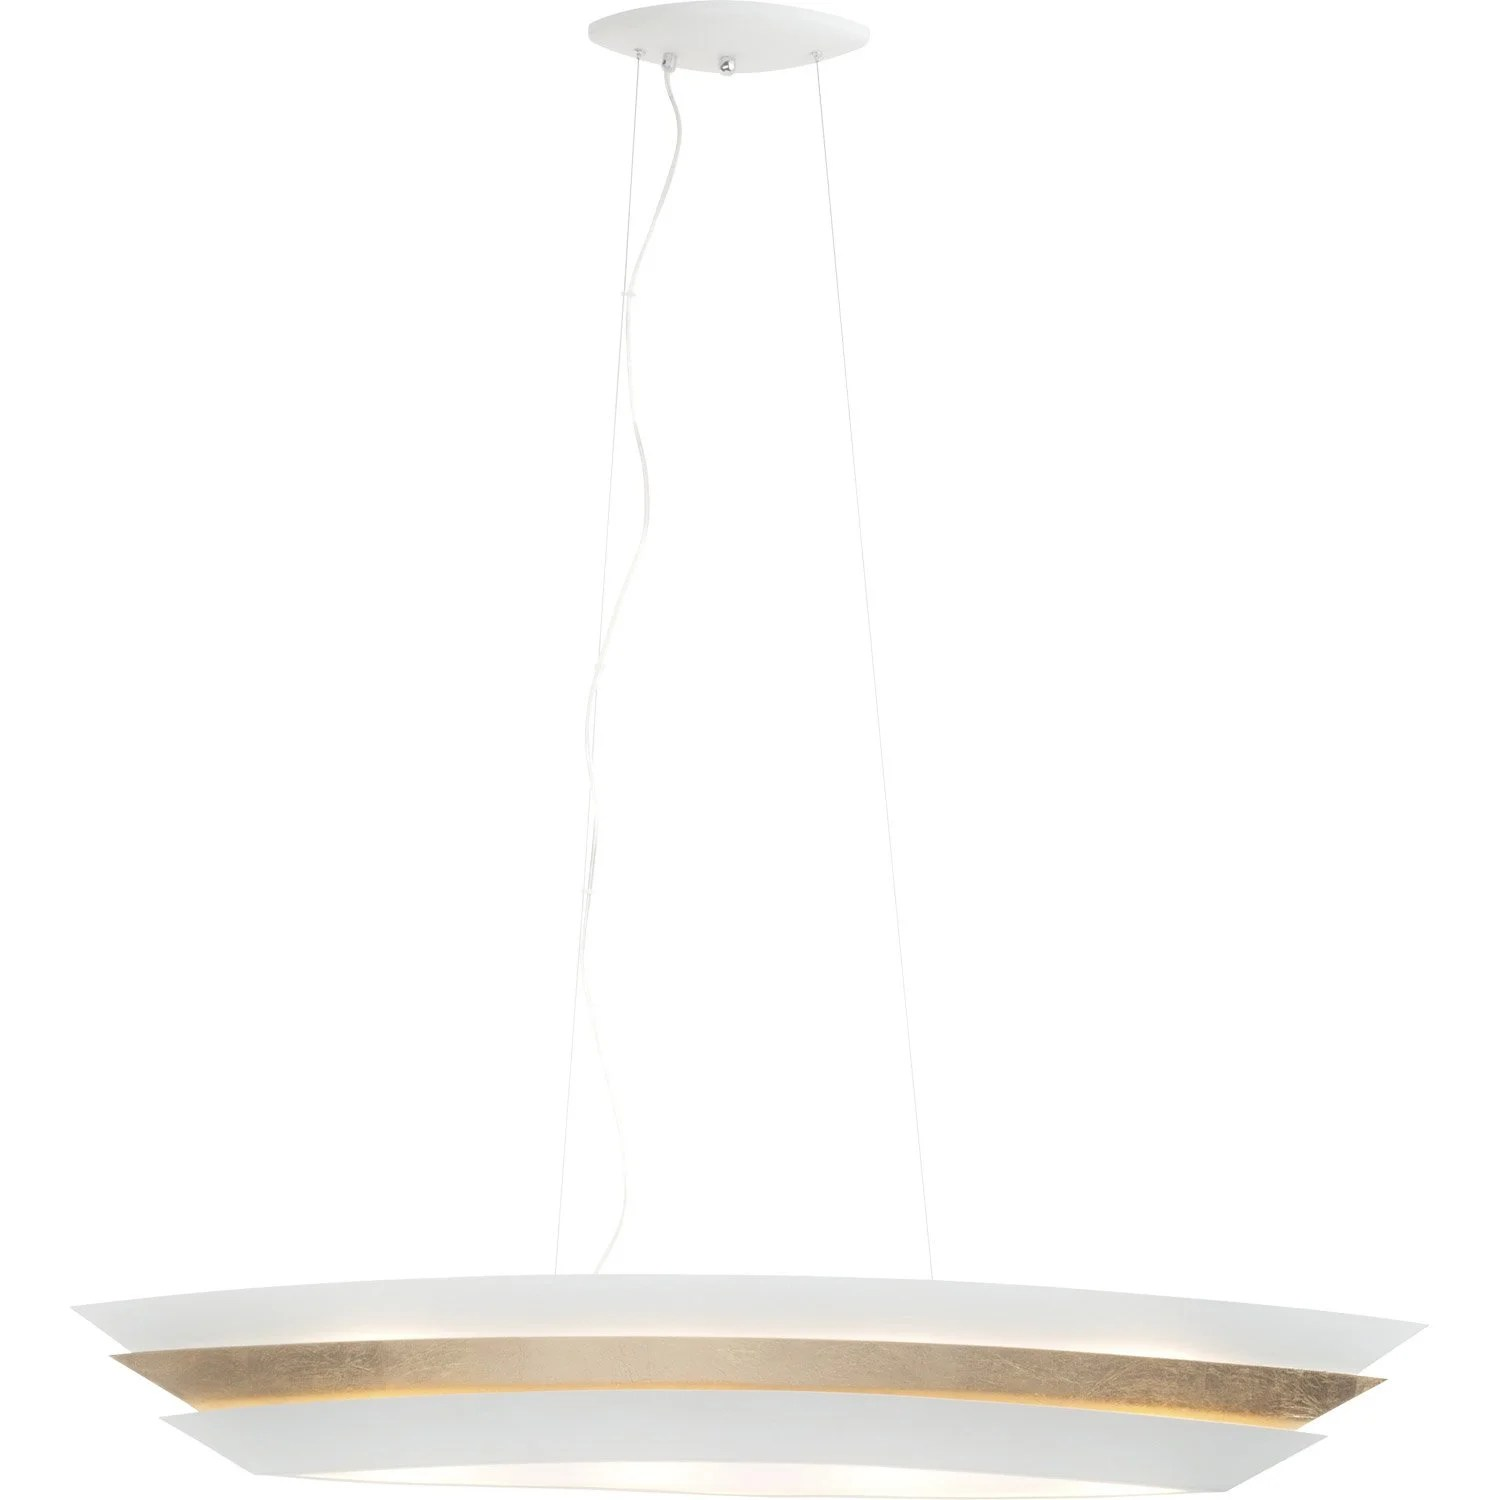 Suspension Contemporaine Suspension Contemporain Métal Blanc Brilliant Ship 4 Lumière S D 28 Cm